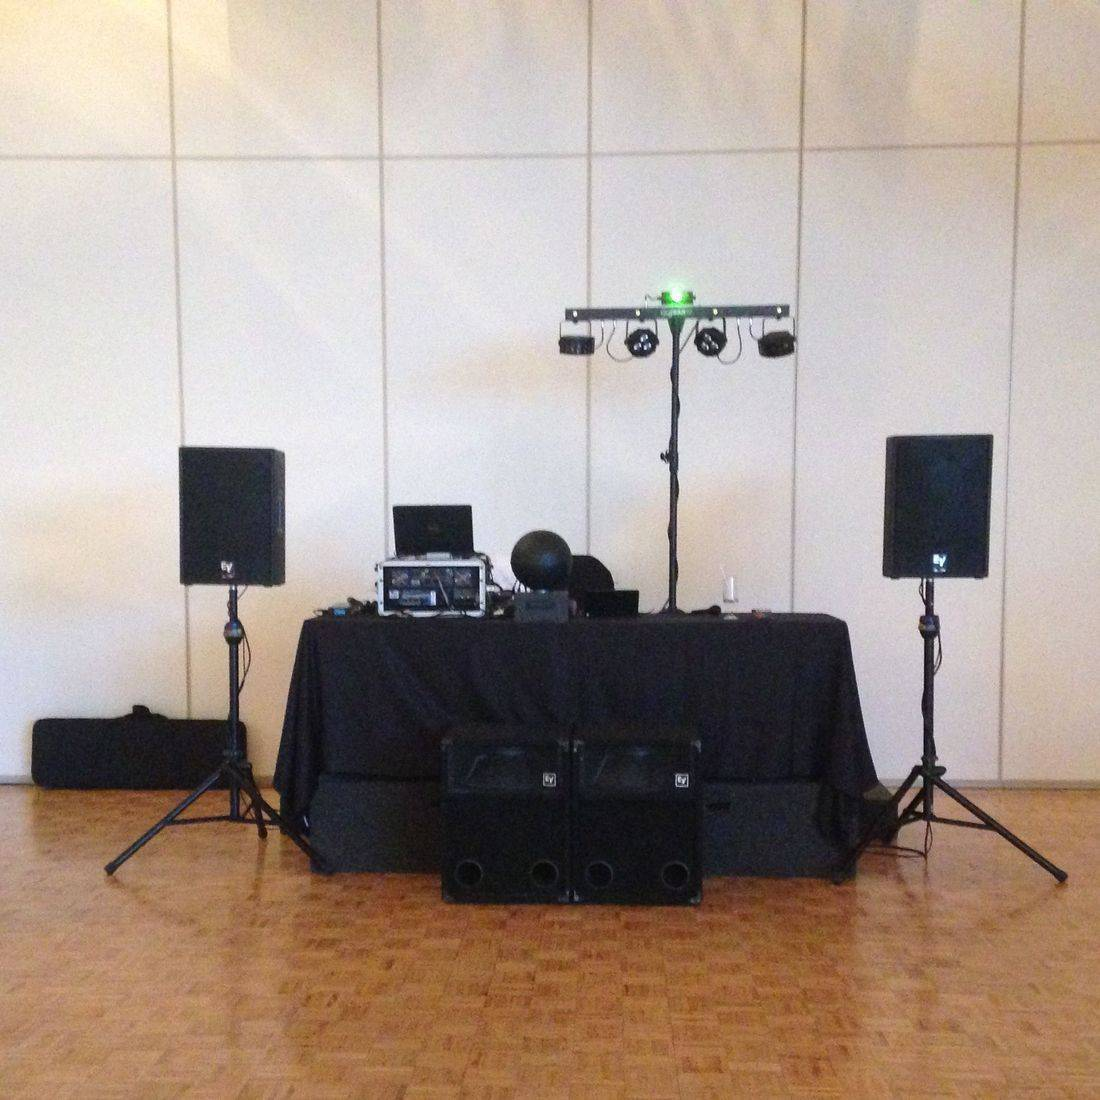 Mr. Productions DJ Service at a Carmens wedding.